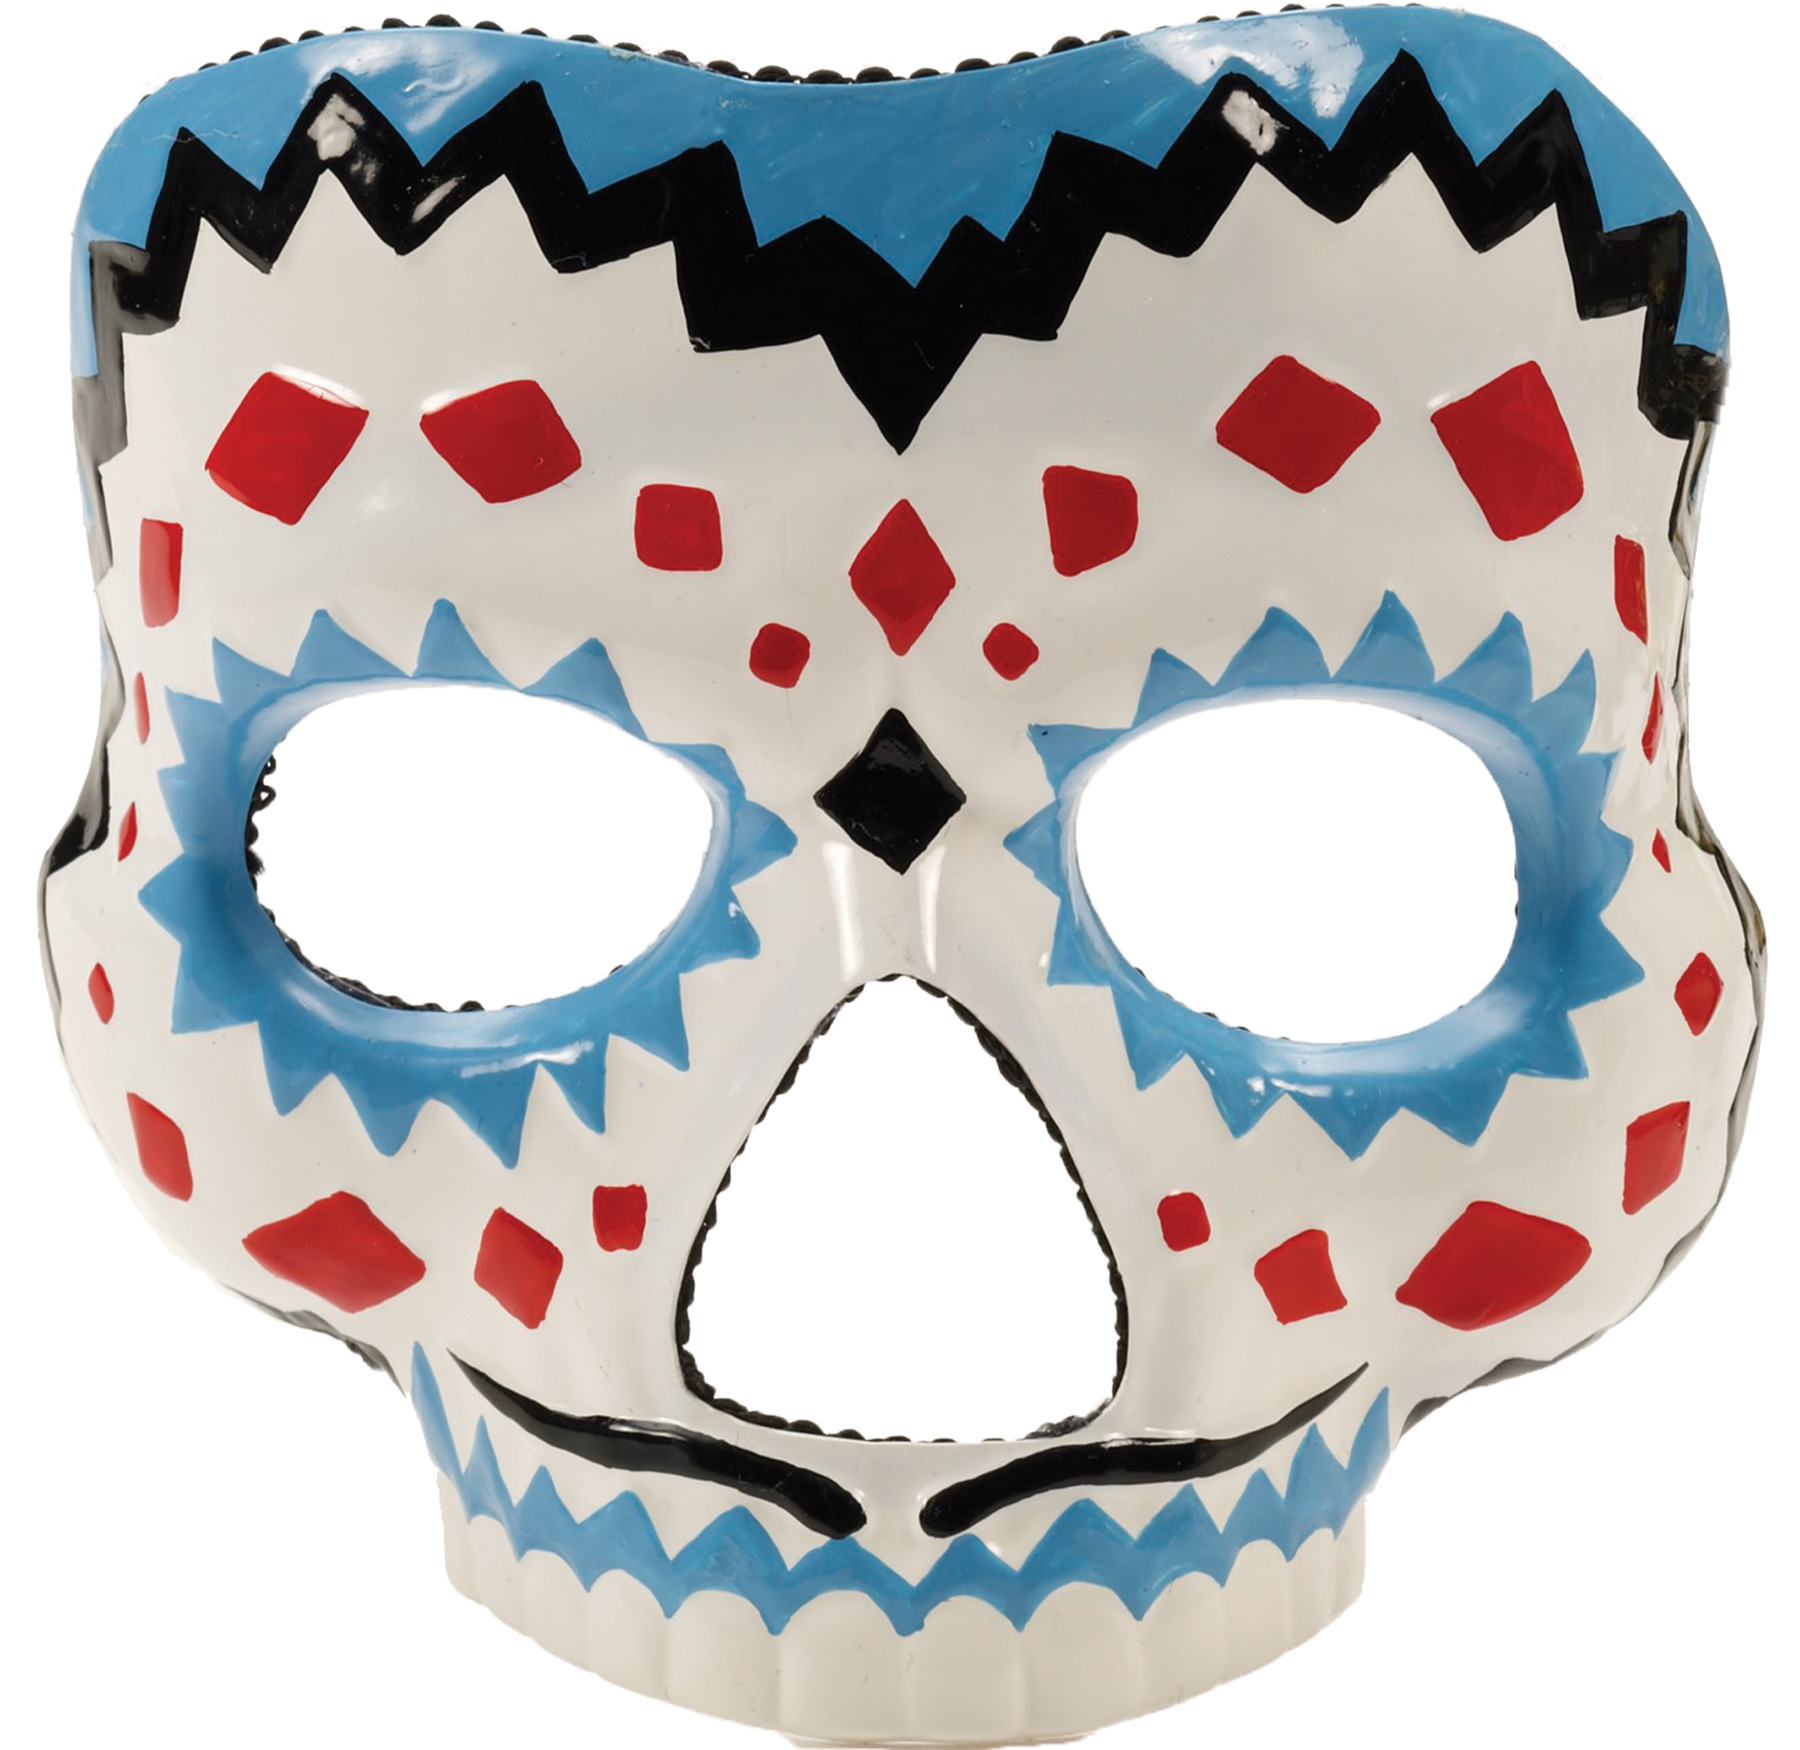 Featured Image for Day Of The Dead Male Mask